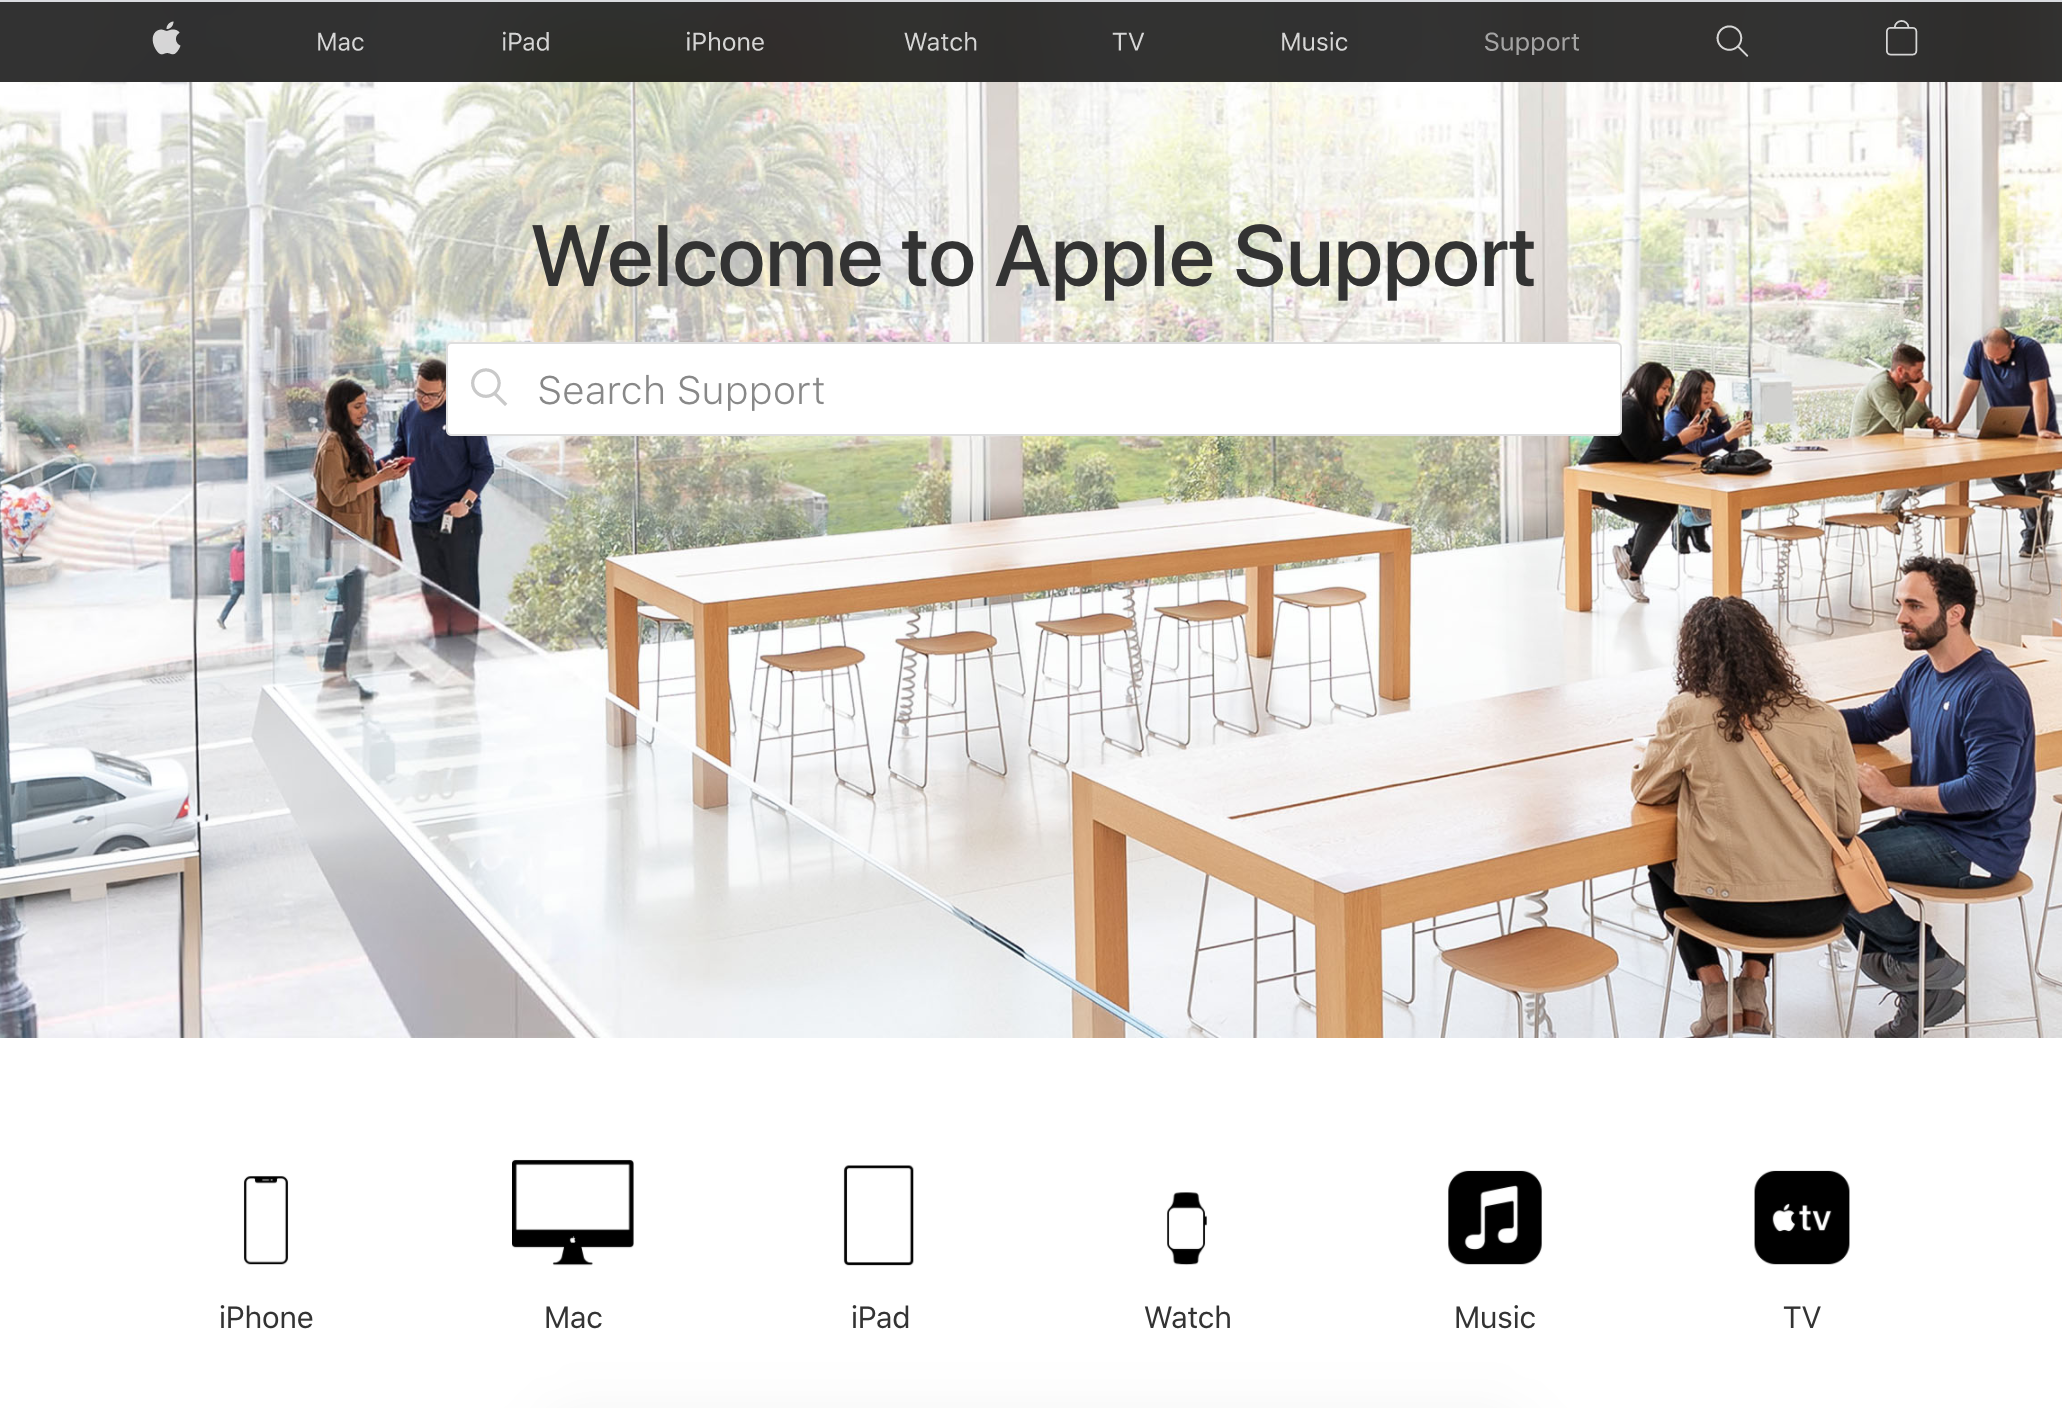 The Apple support website showing the search bar and icons for their different products.